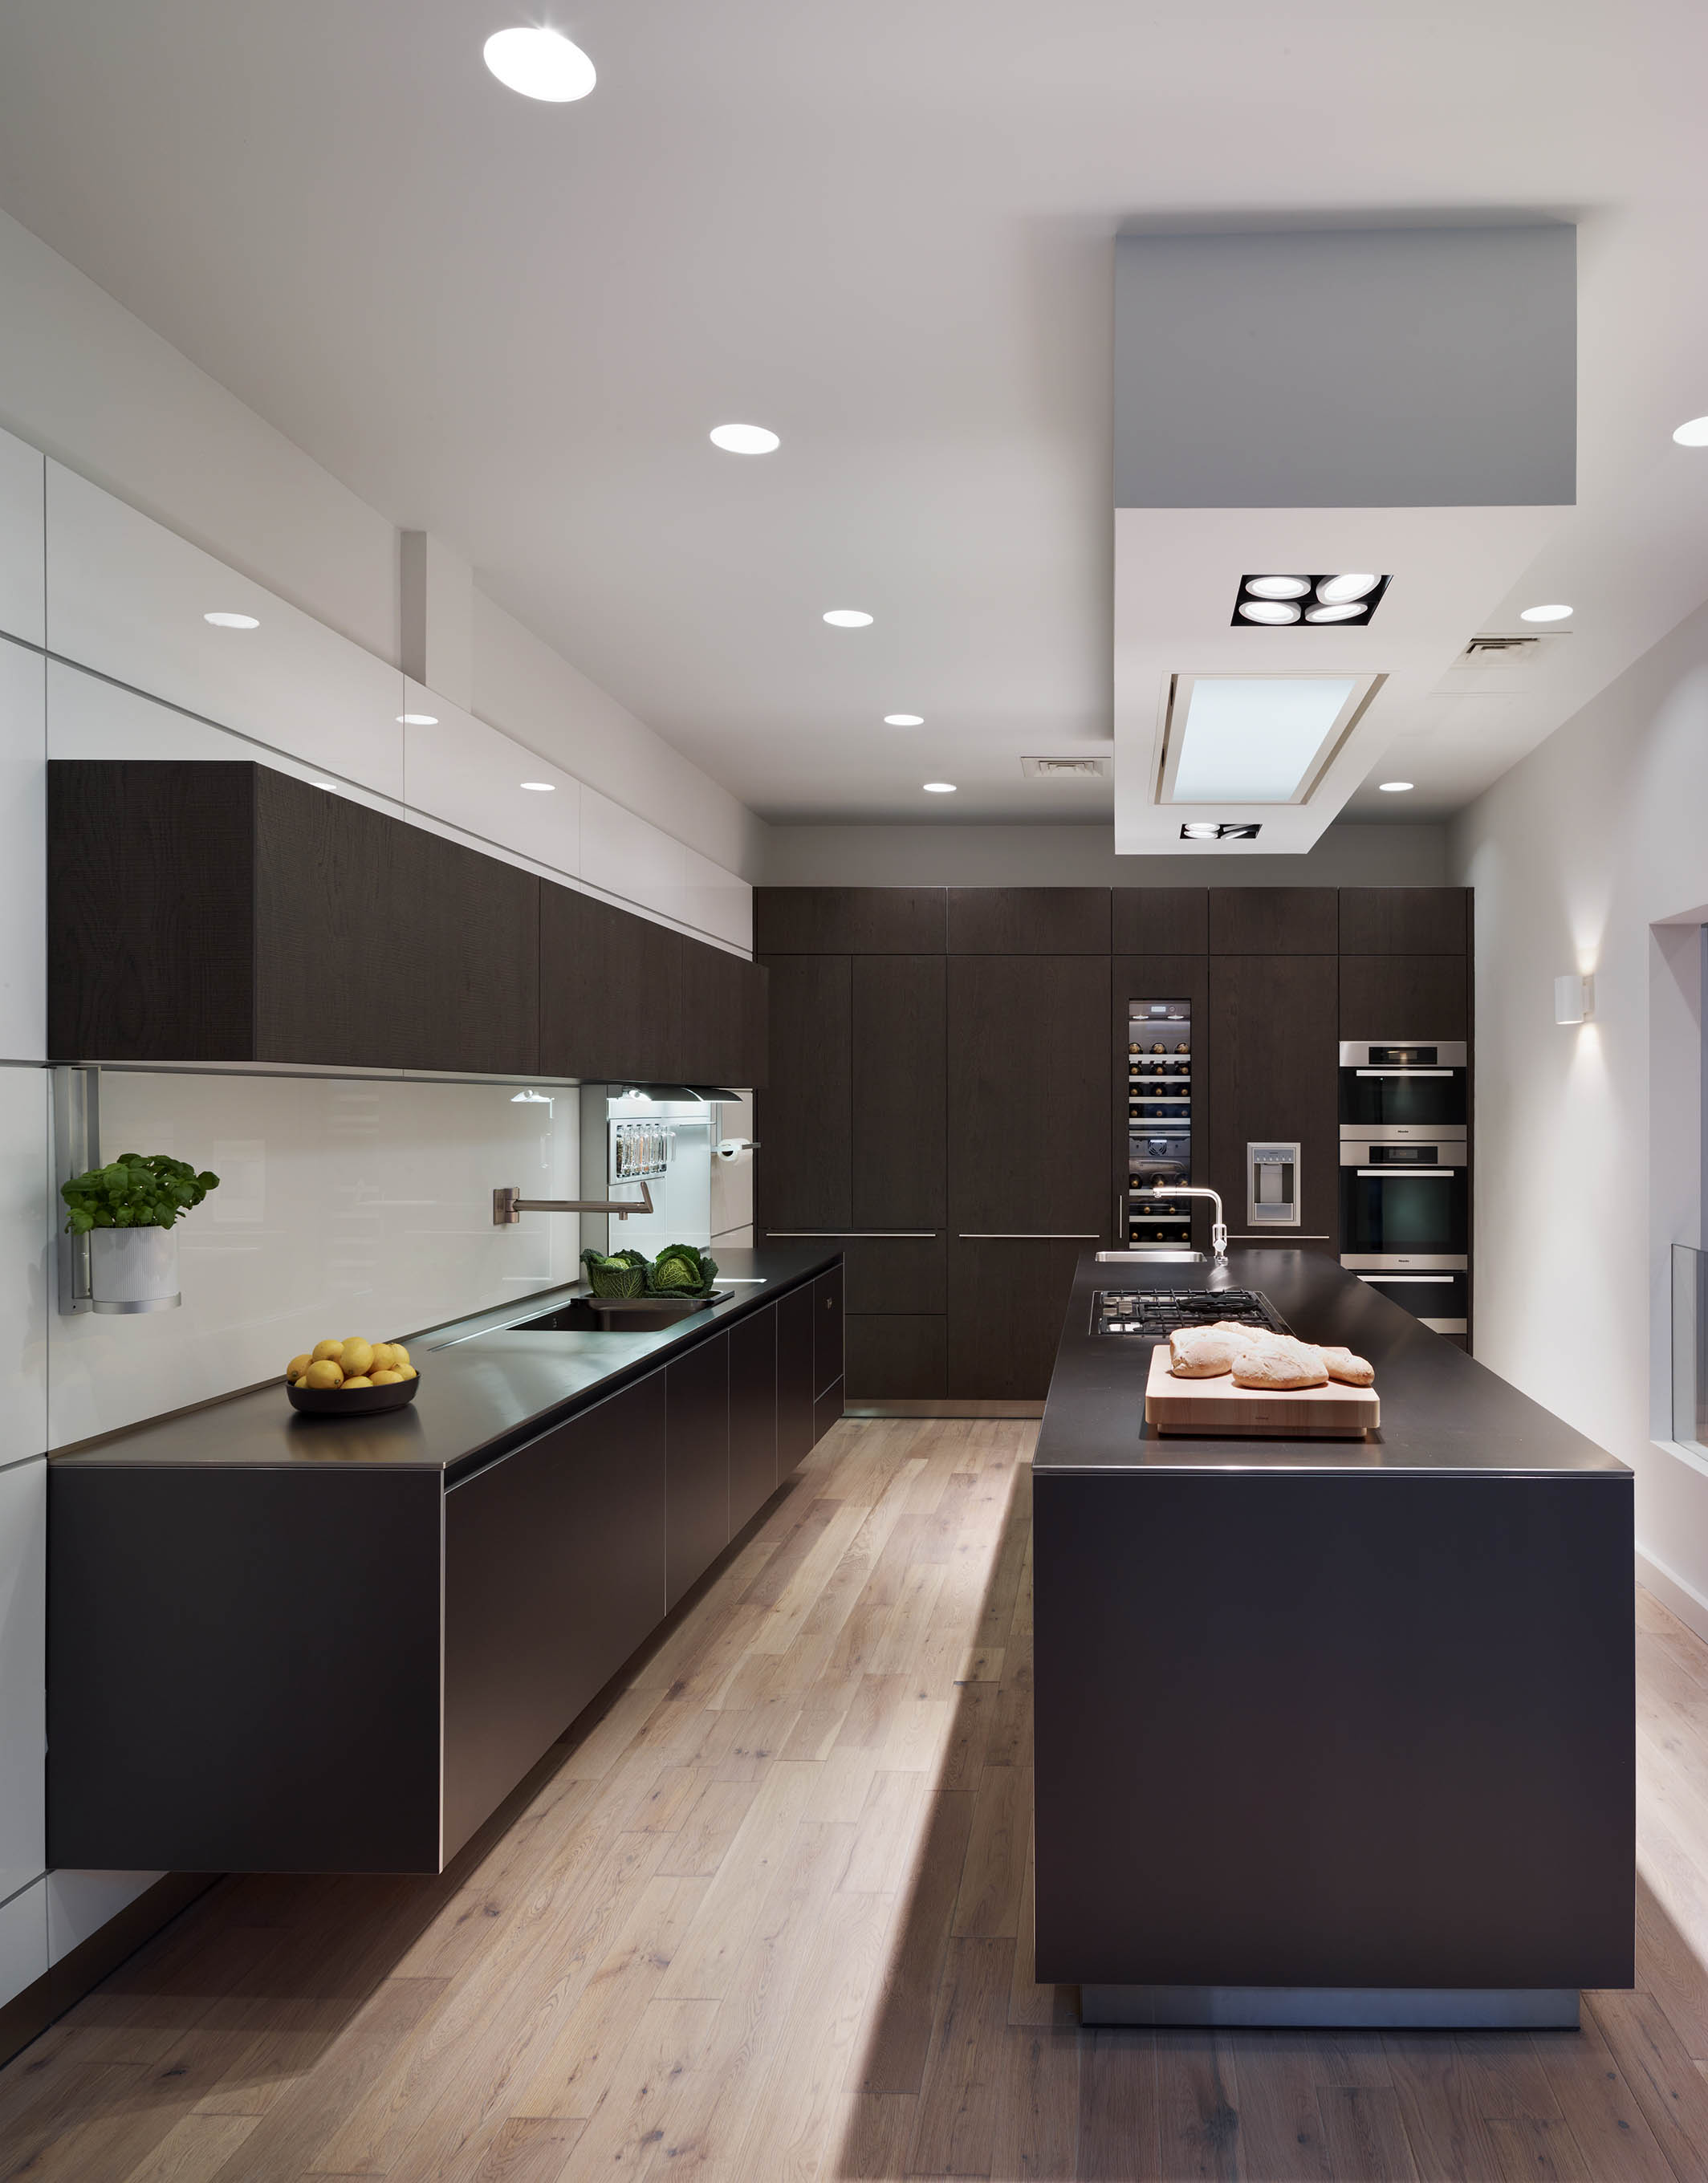 kitchen showrooms grill architectures bulthaup showroom in cheshire 厨房建筑在柴郡的牛角陈列室